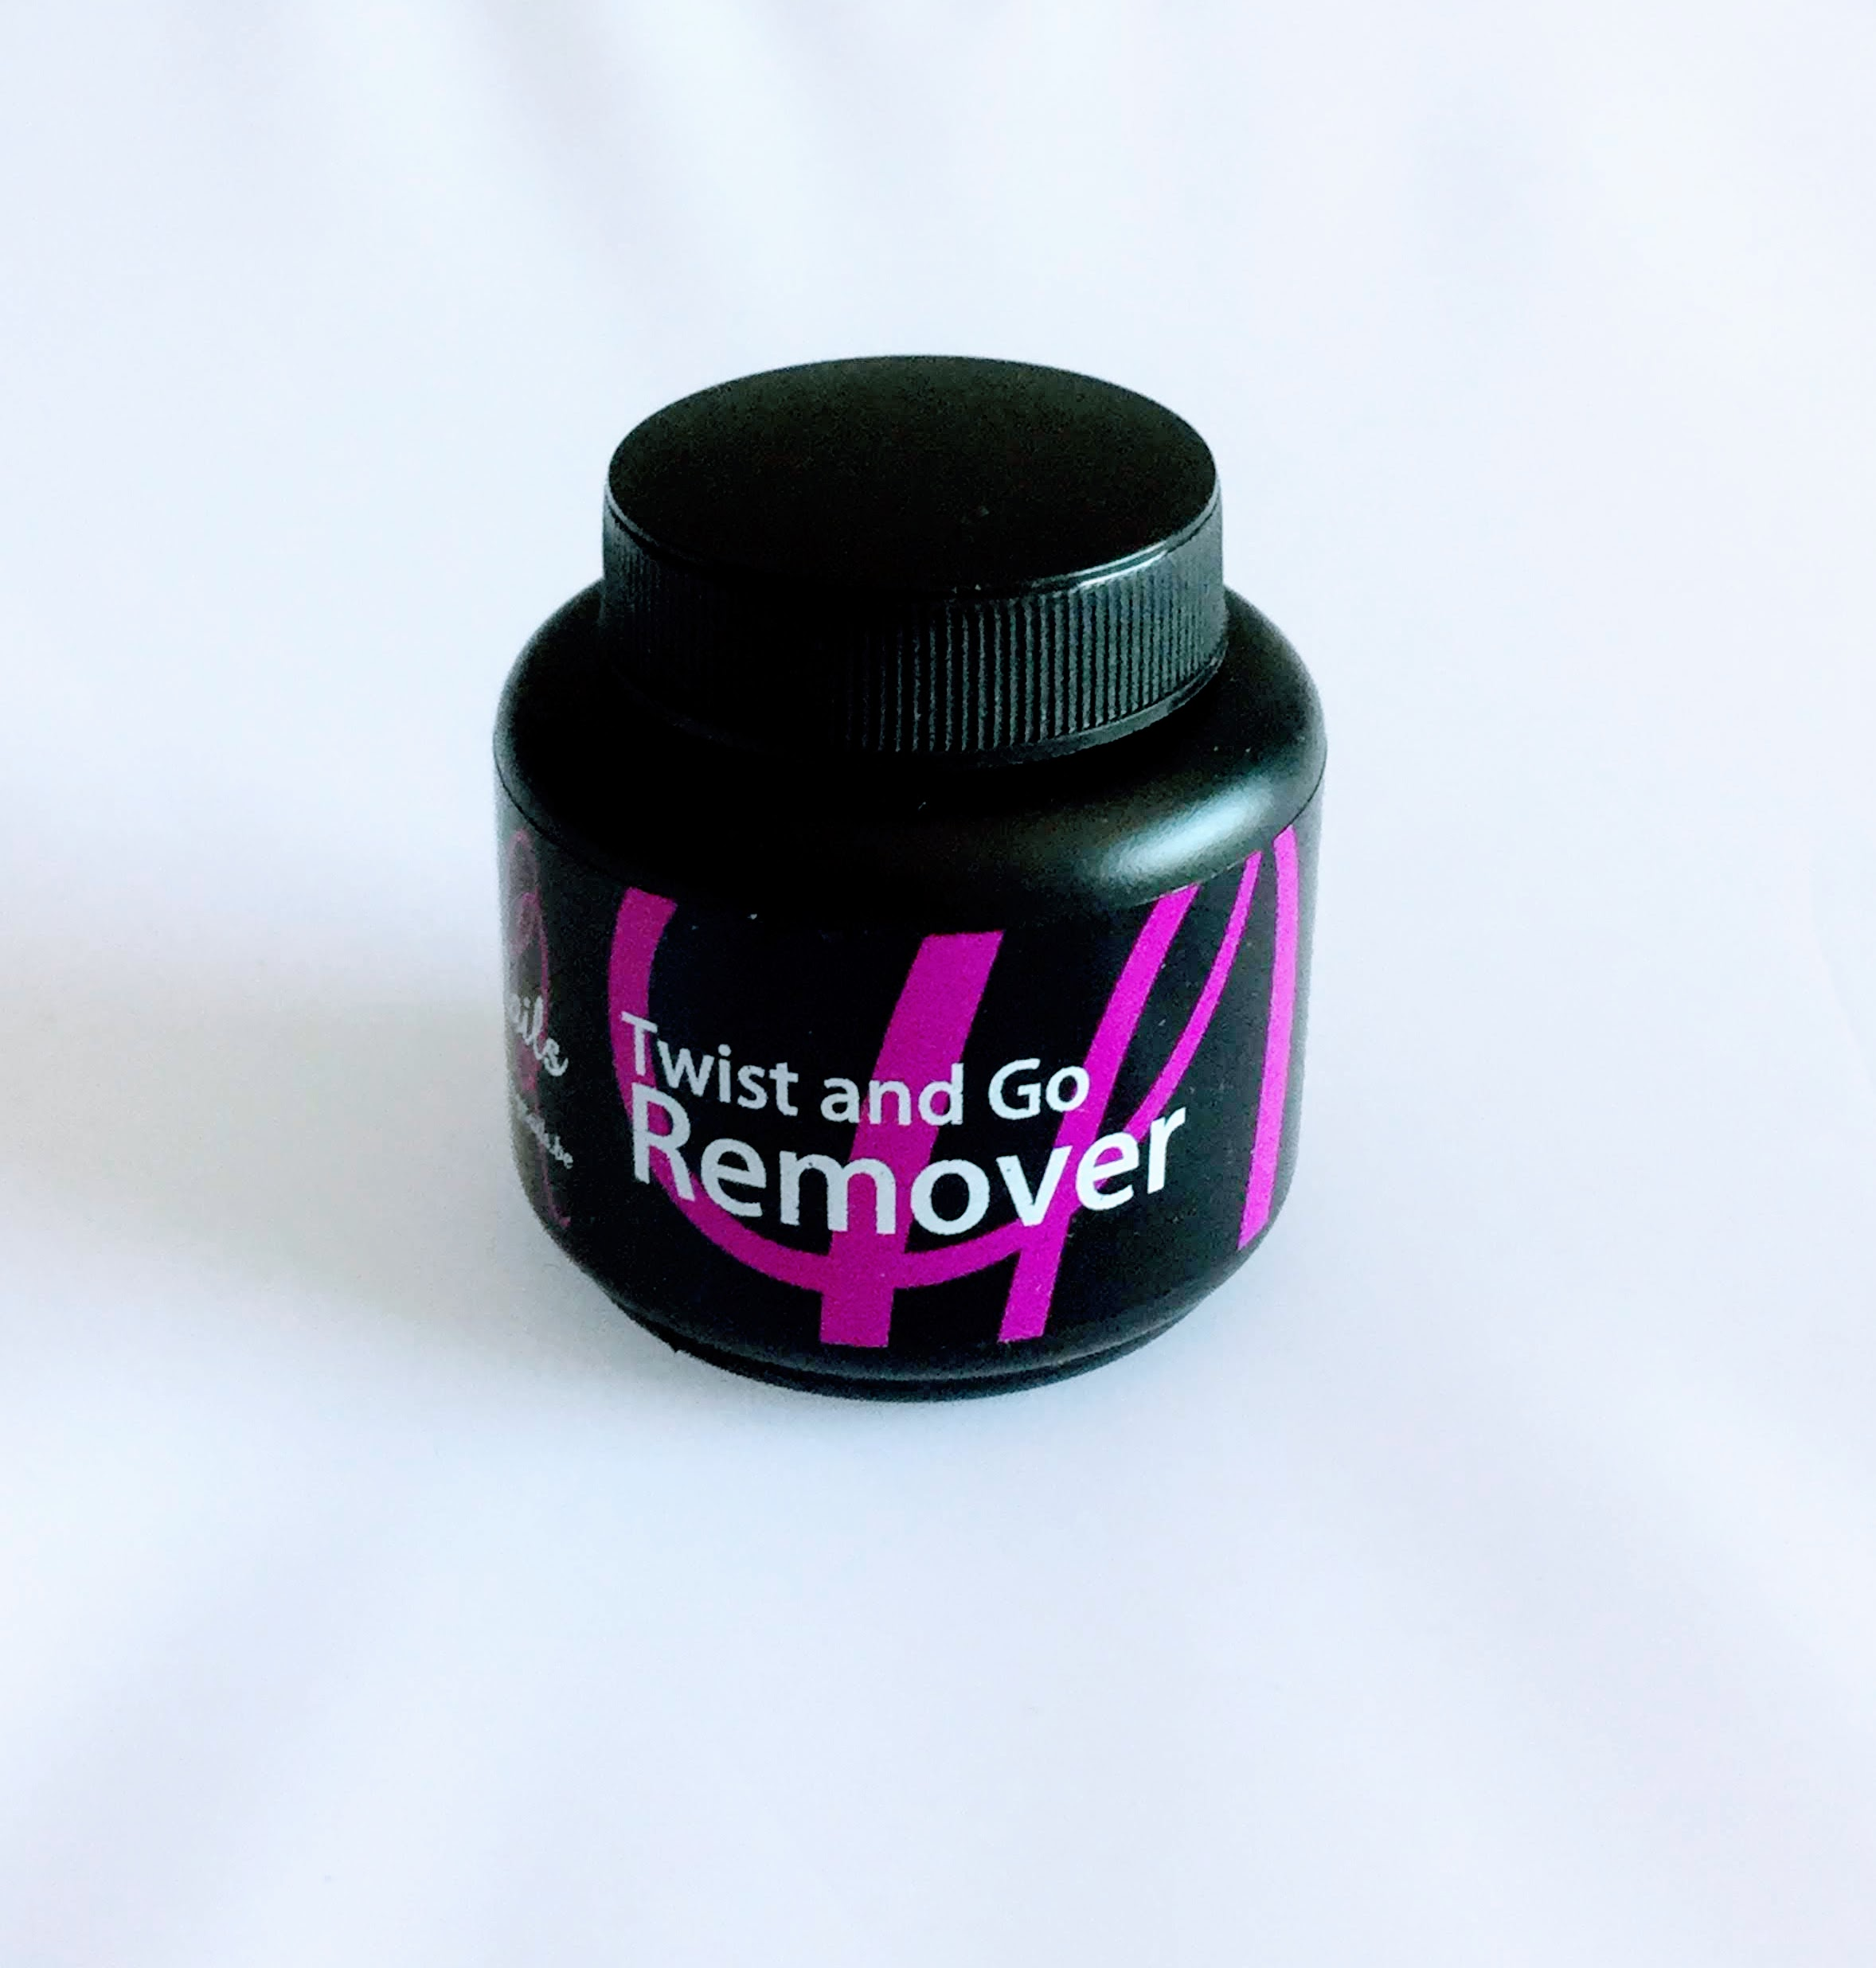 Twist and Go Remover